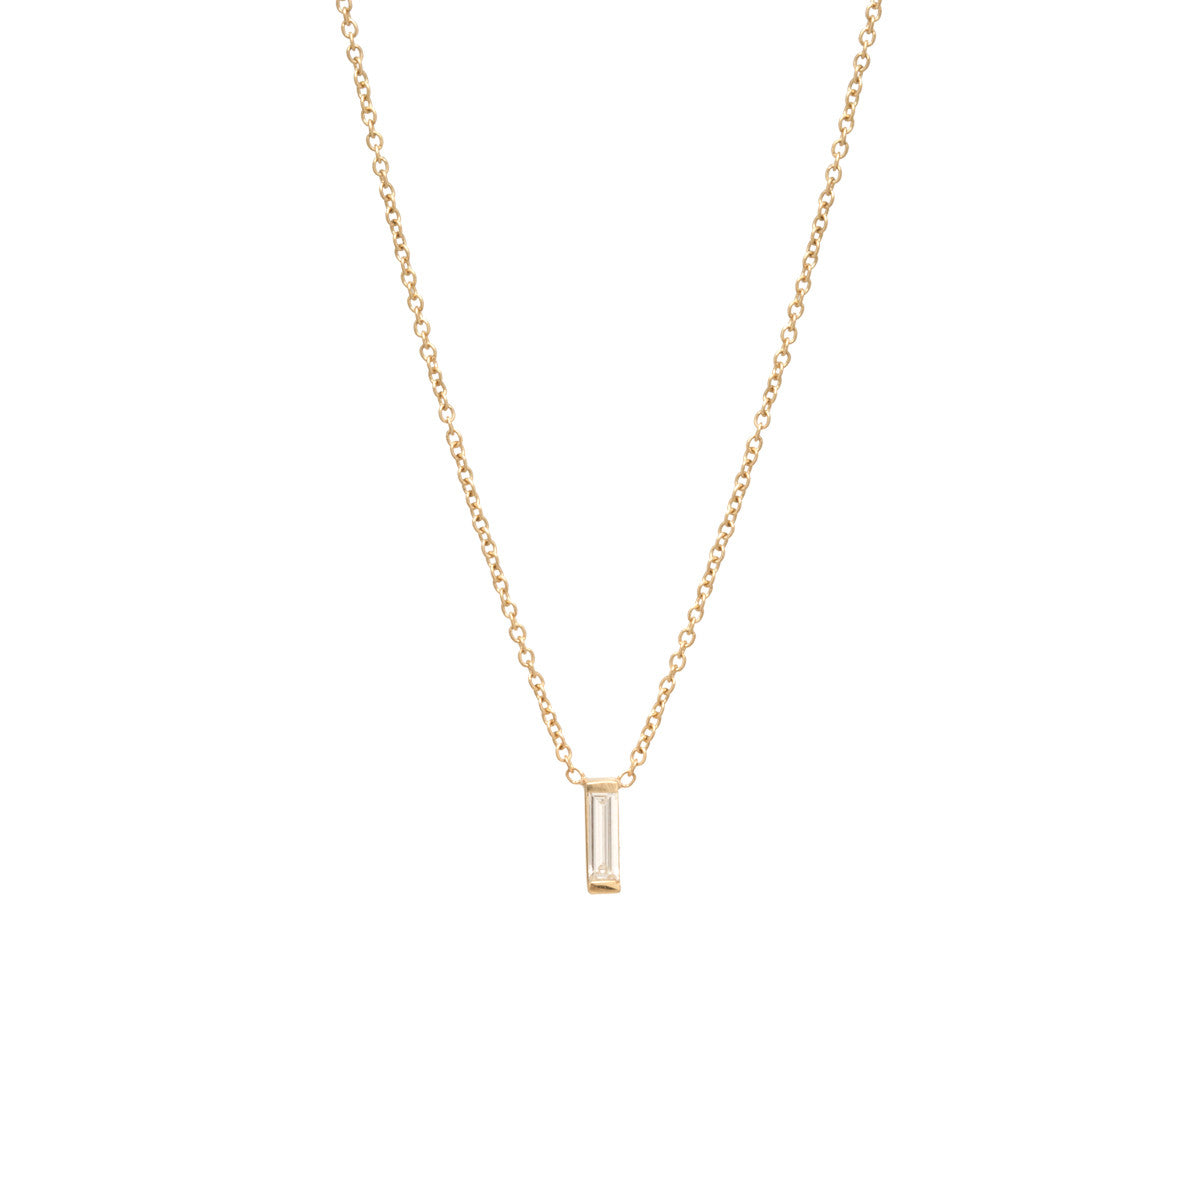 Zoë Chicco 14kt Yellow Gold Large Vertical Diamond Baguette Necklace